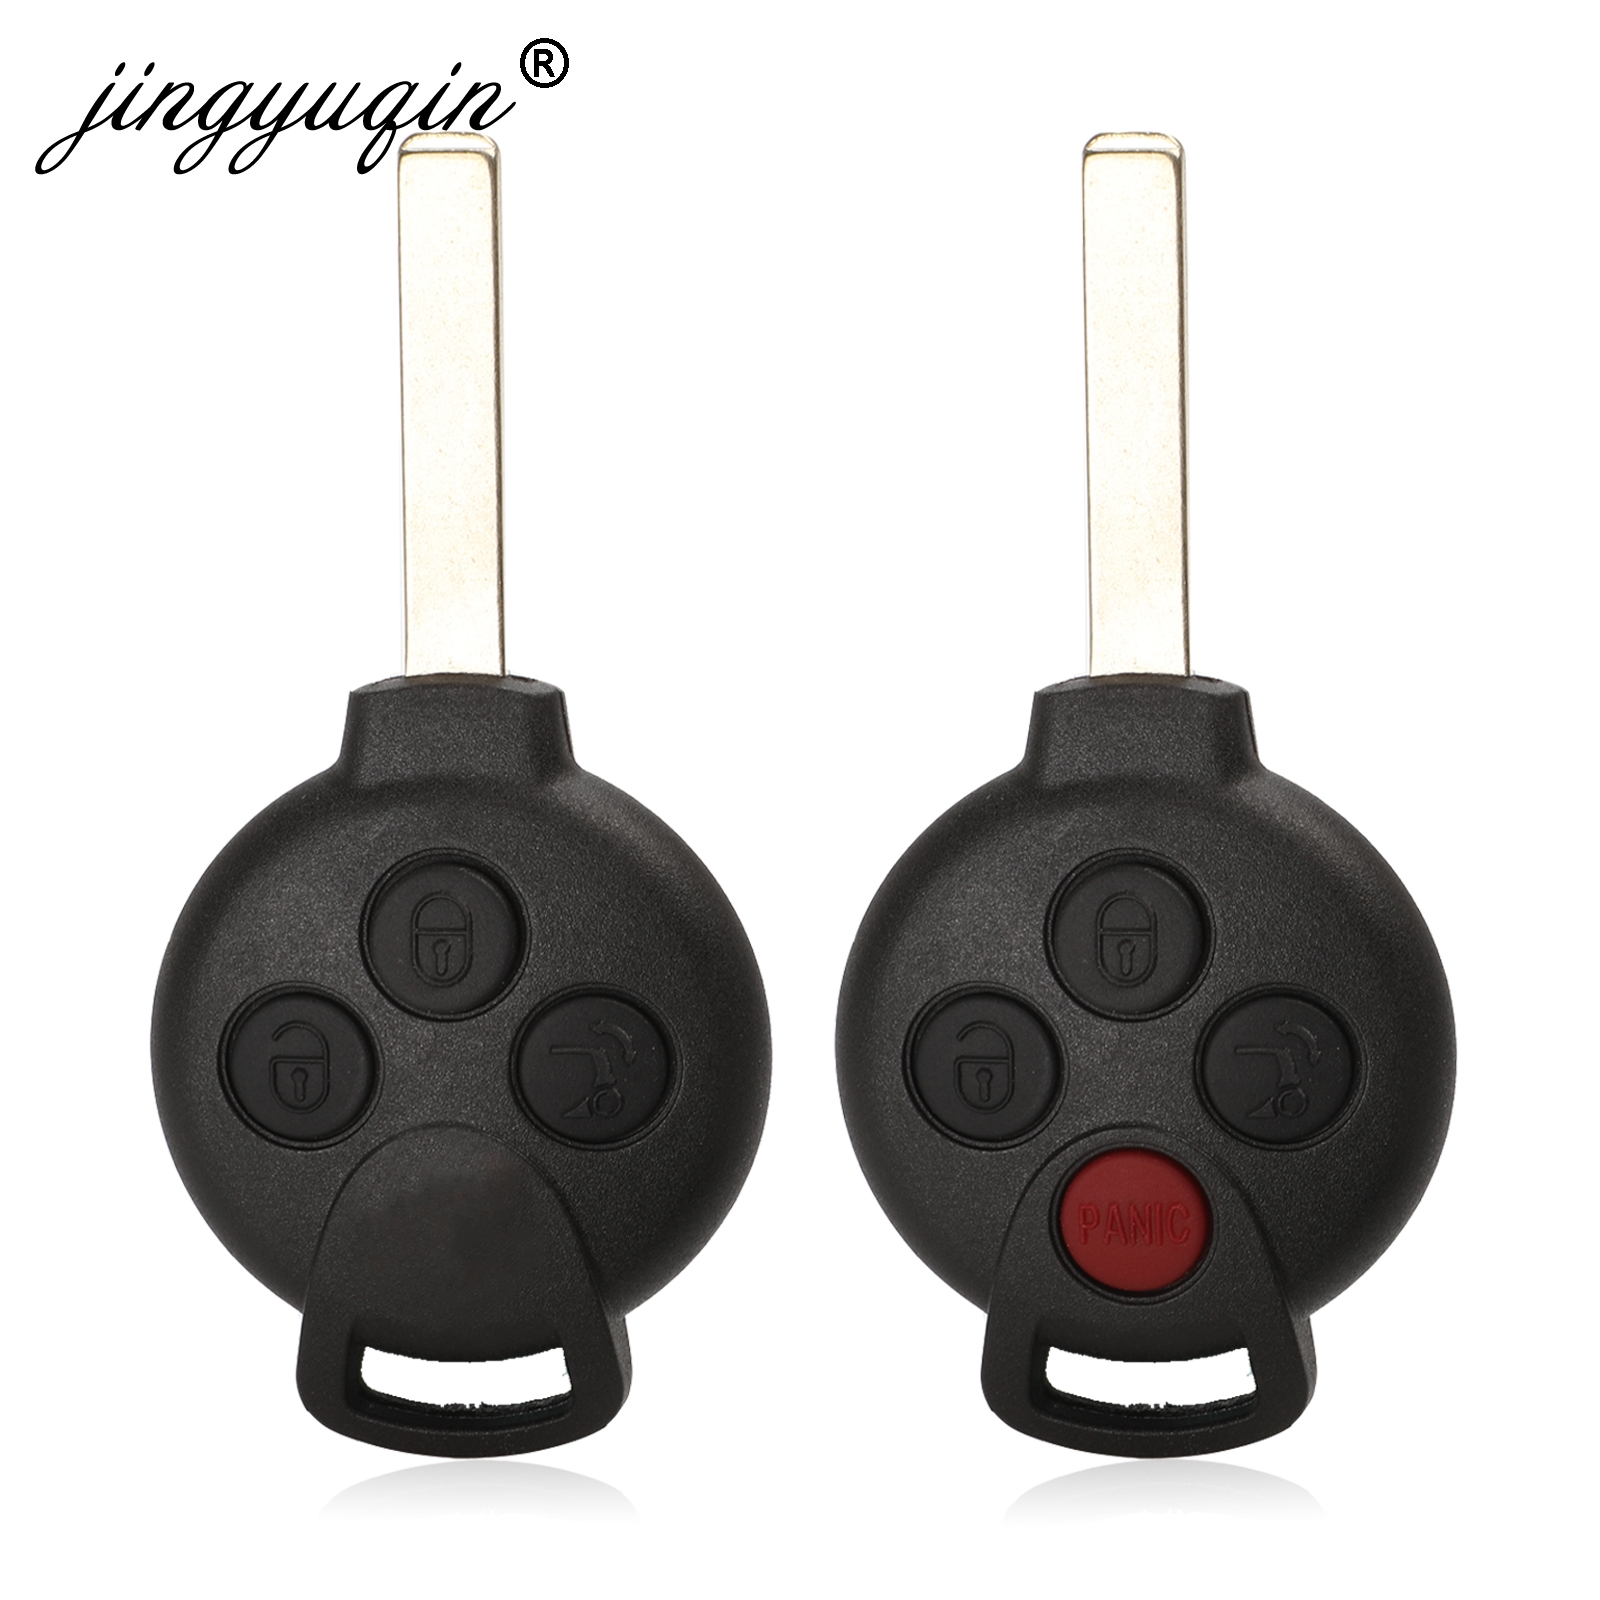 jingyuqin New Remote Key Case Cover 3/4 Buttons For MERCEDES BENZ <font><b>MB</b></font> Smart Keyless Entry Fob Car Key Shell image